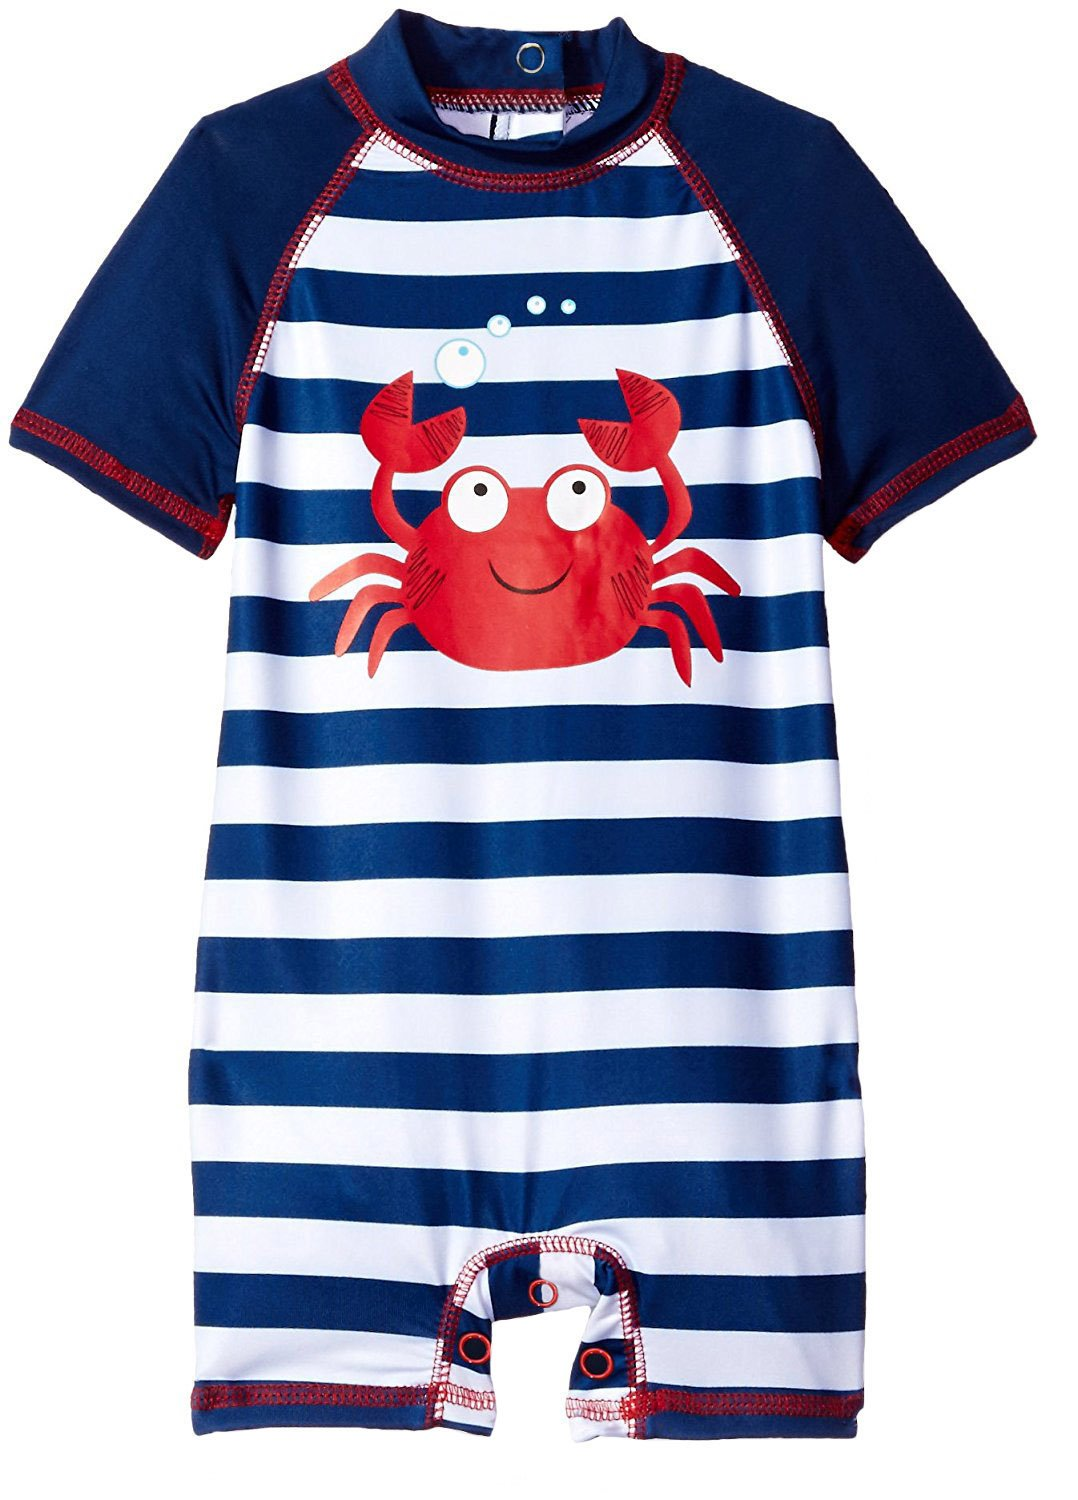 Wippette Baby Boys Stripes Crab Rashguard with Easy Snaps Swimsuit 0-6 Months